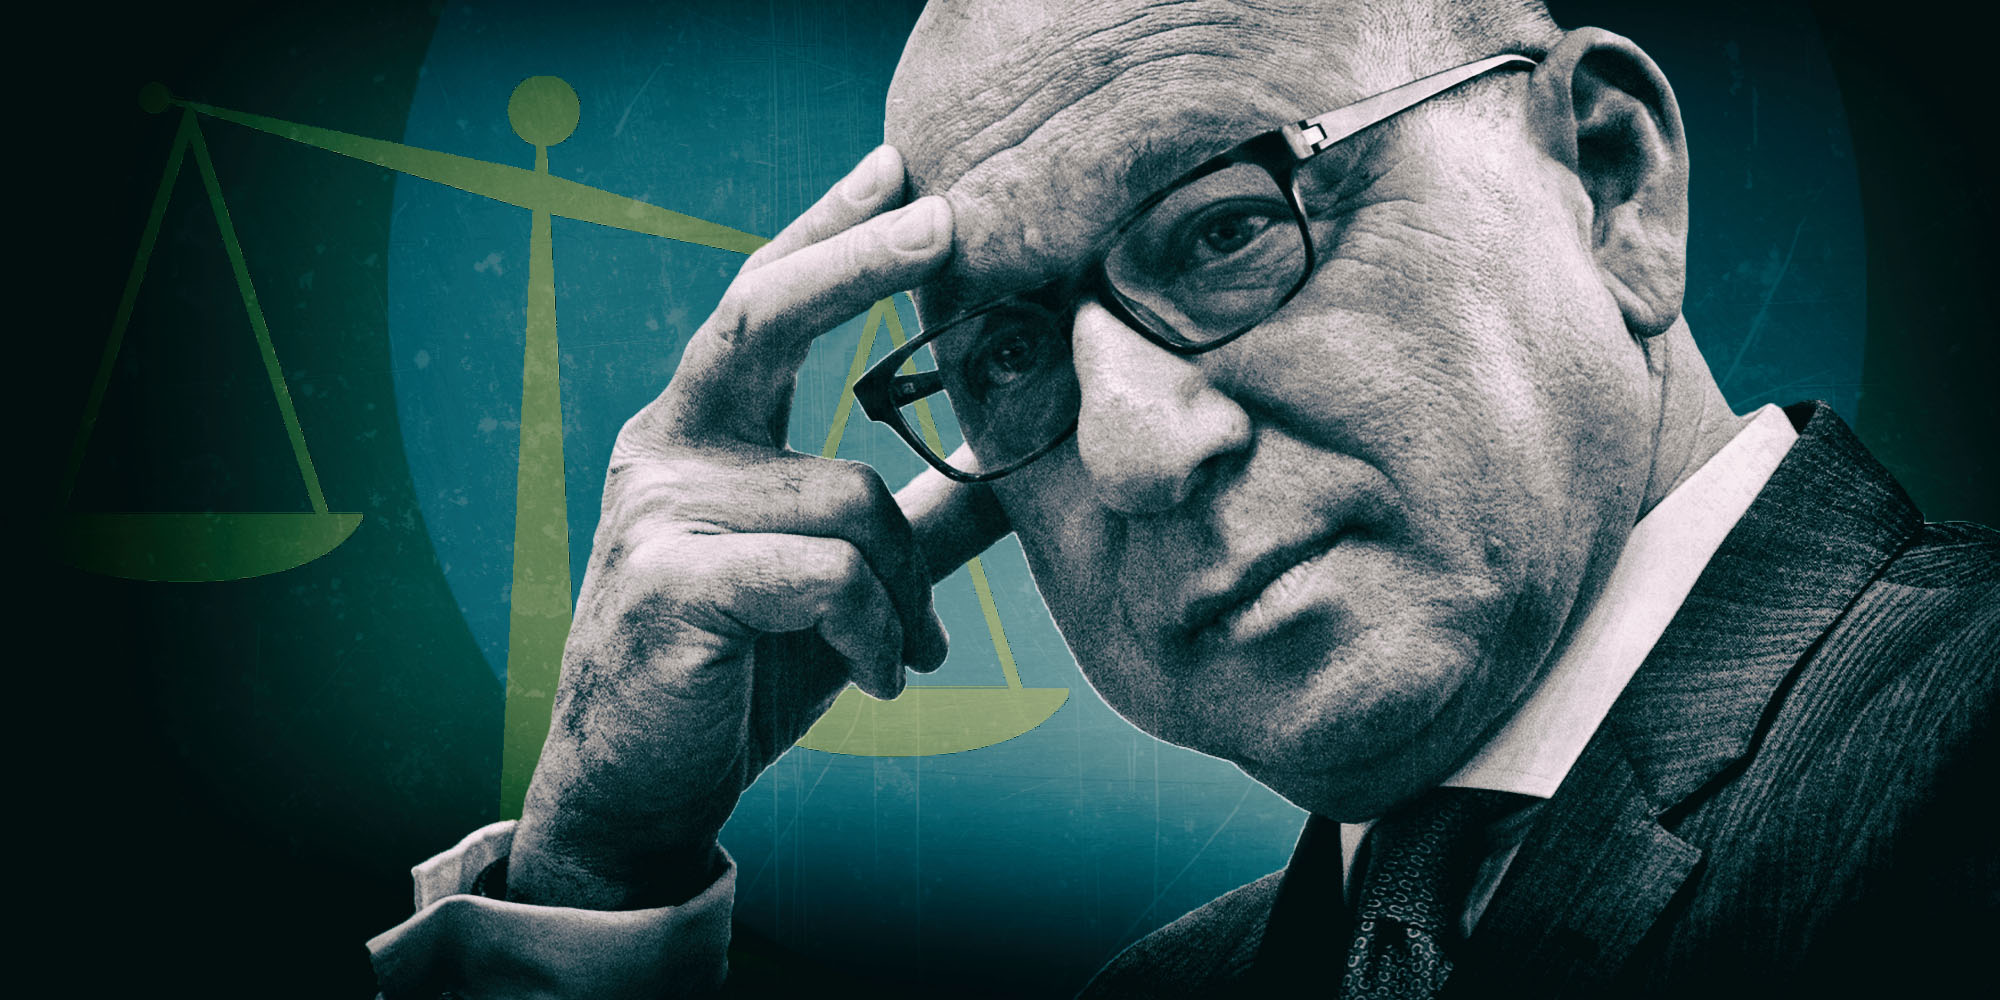 Manuel's sideswipe at the judiciary could hurt us all